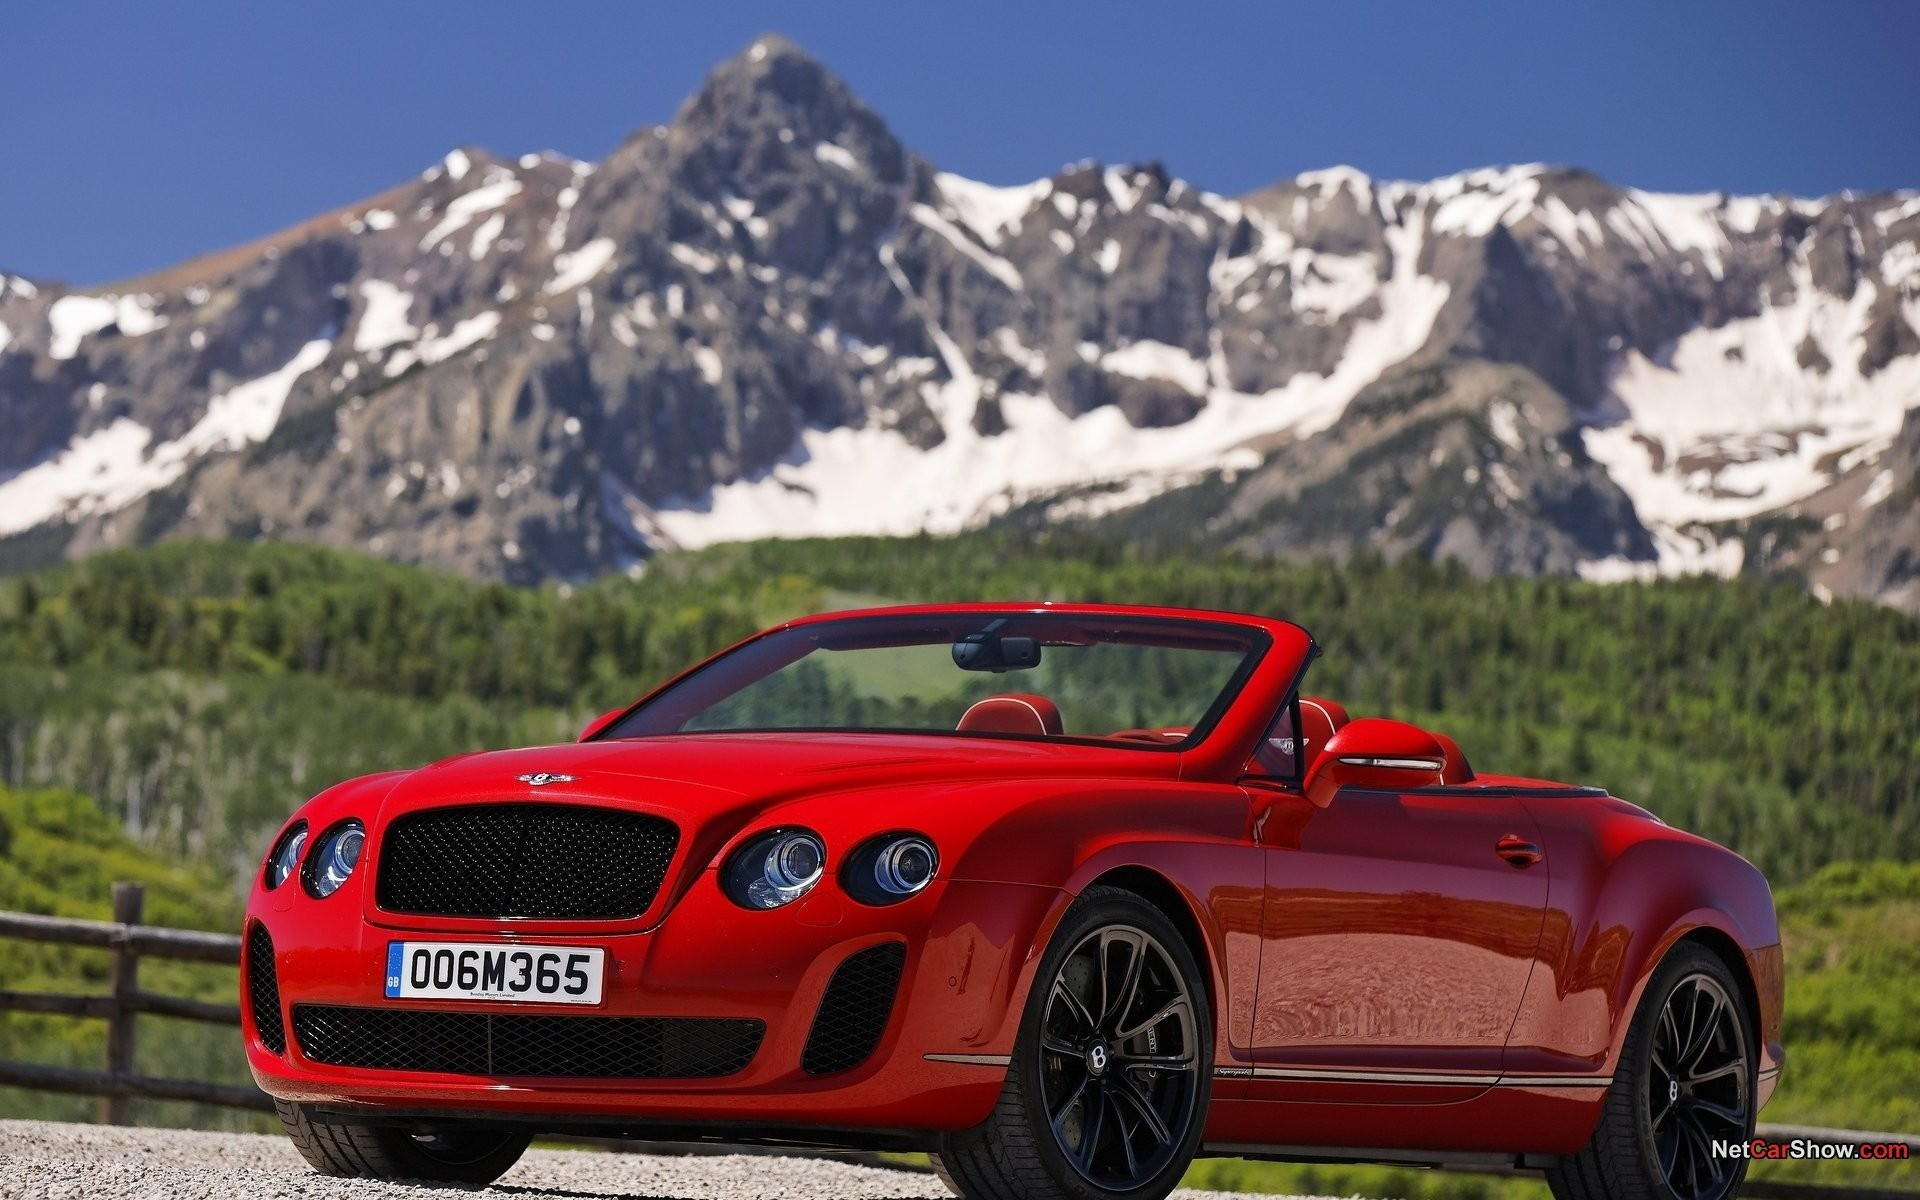 cars Bentley vehicles convertible HD Wallpaper